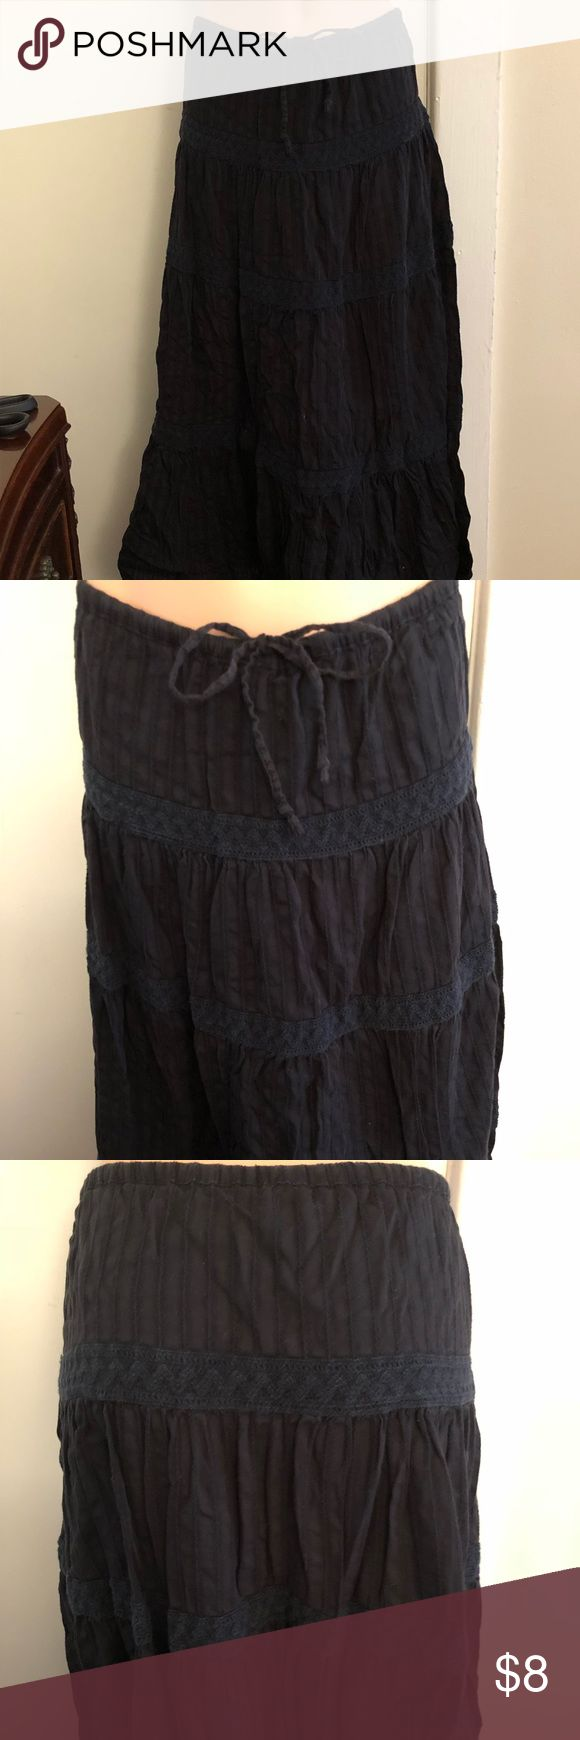 Boho Maxi Skirt - Black Boho black maxi skirt from Old Navy!  Front-tie closure and elastic waistband.  Size XXS, but can also fit sizes XS and S (runs big).  100% cotton. Old Navy Skirts Maxi